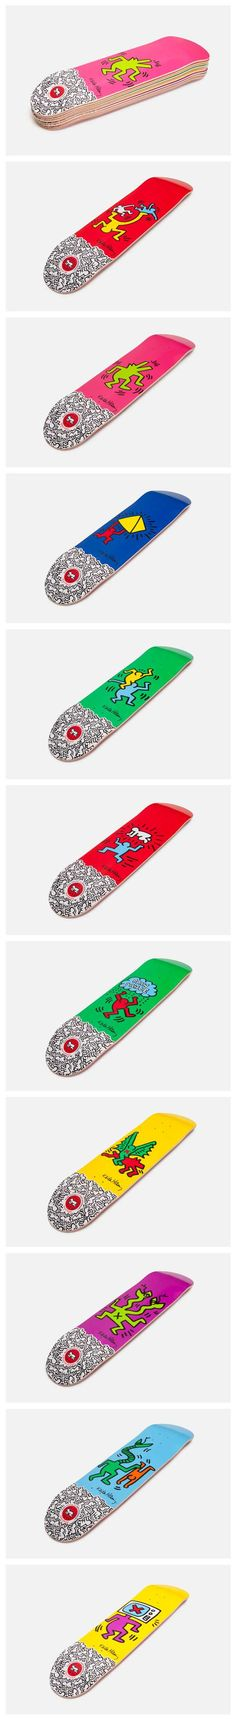 Keith Haring X Alien Workshop collaboration skate board deck collection.